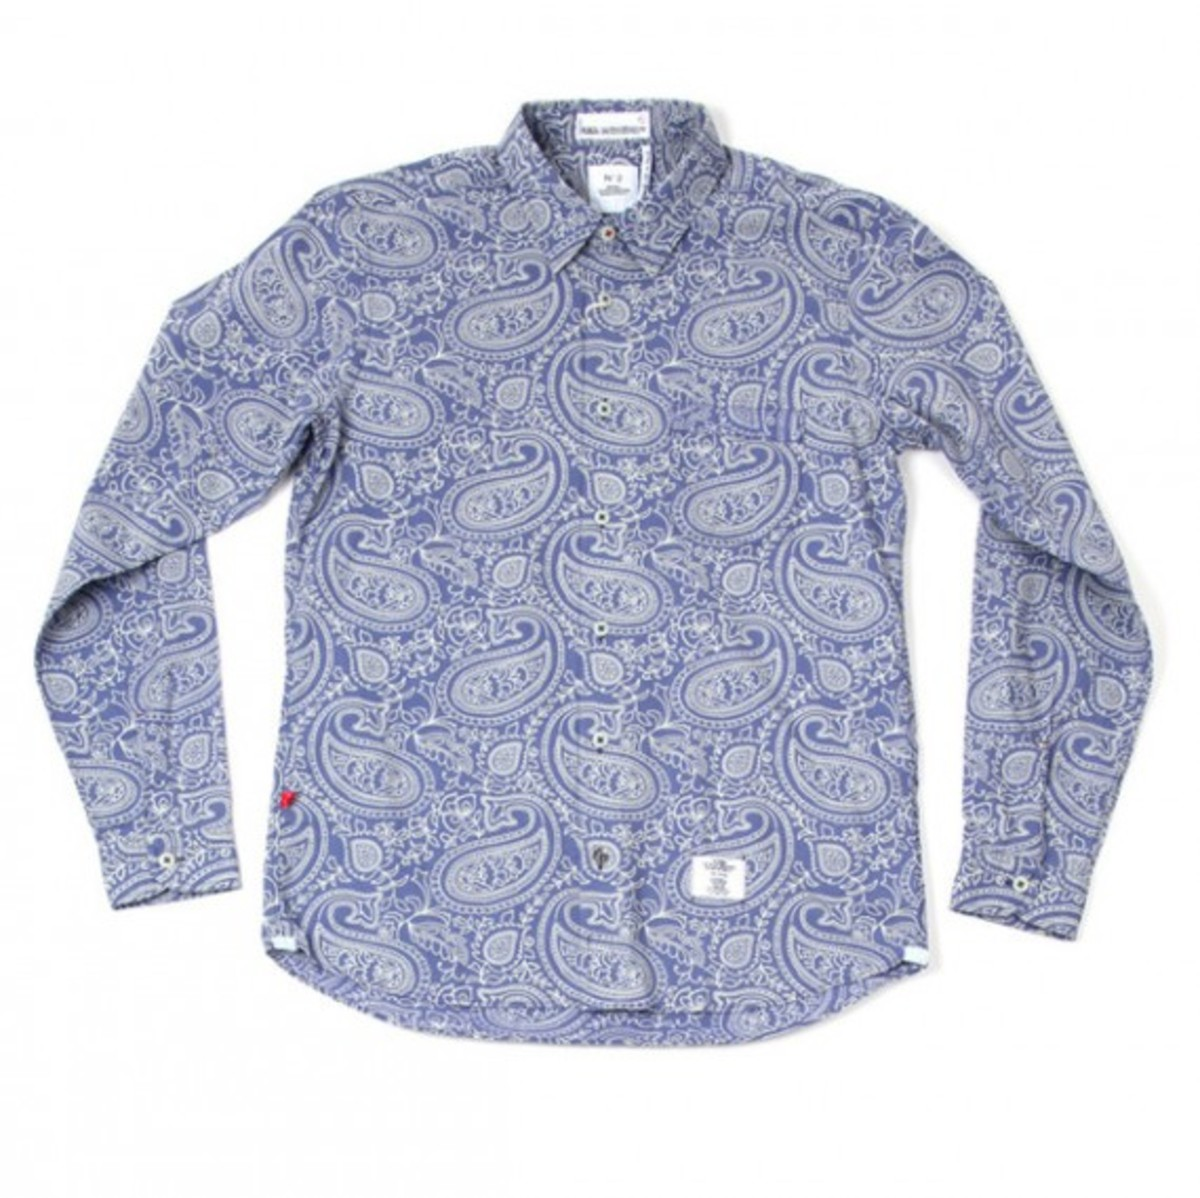 bedwin-and-the-heartbreakers-tailor-paisley-shirt-02